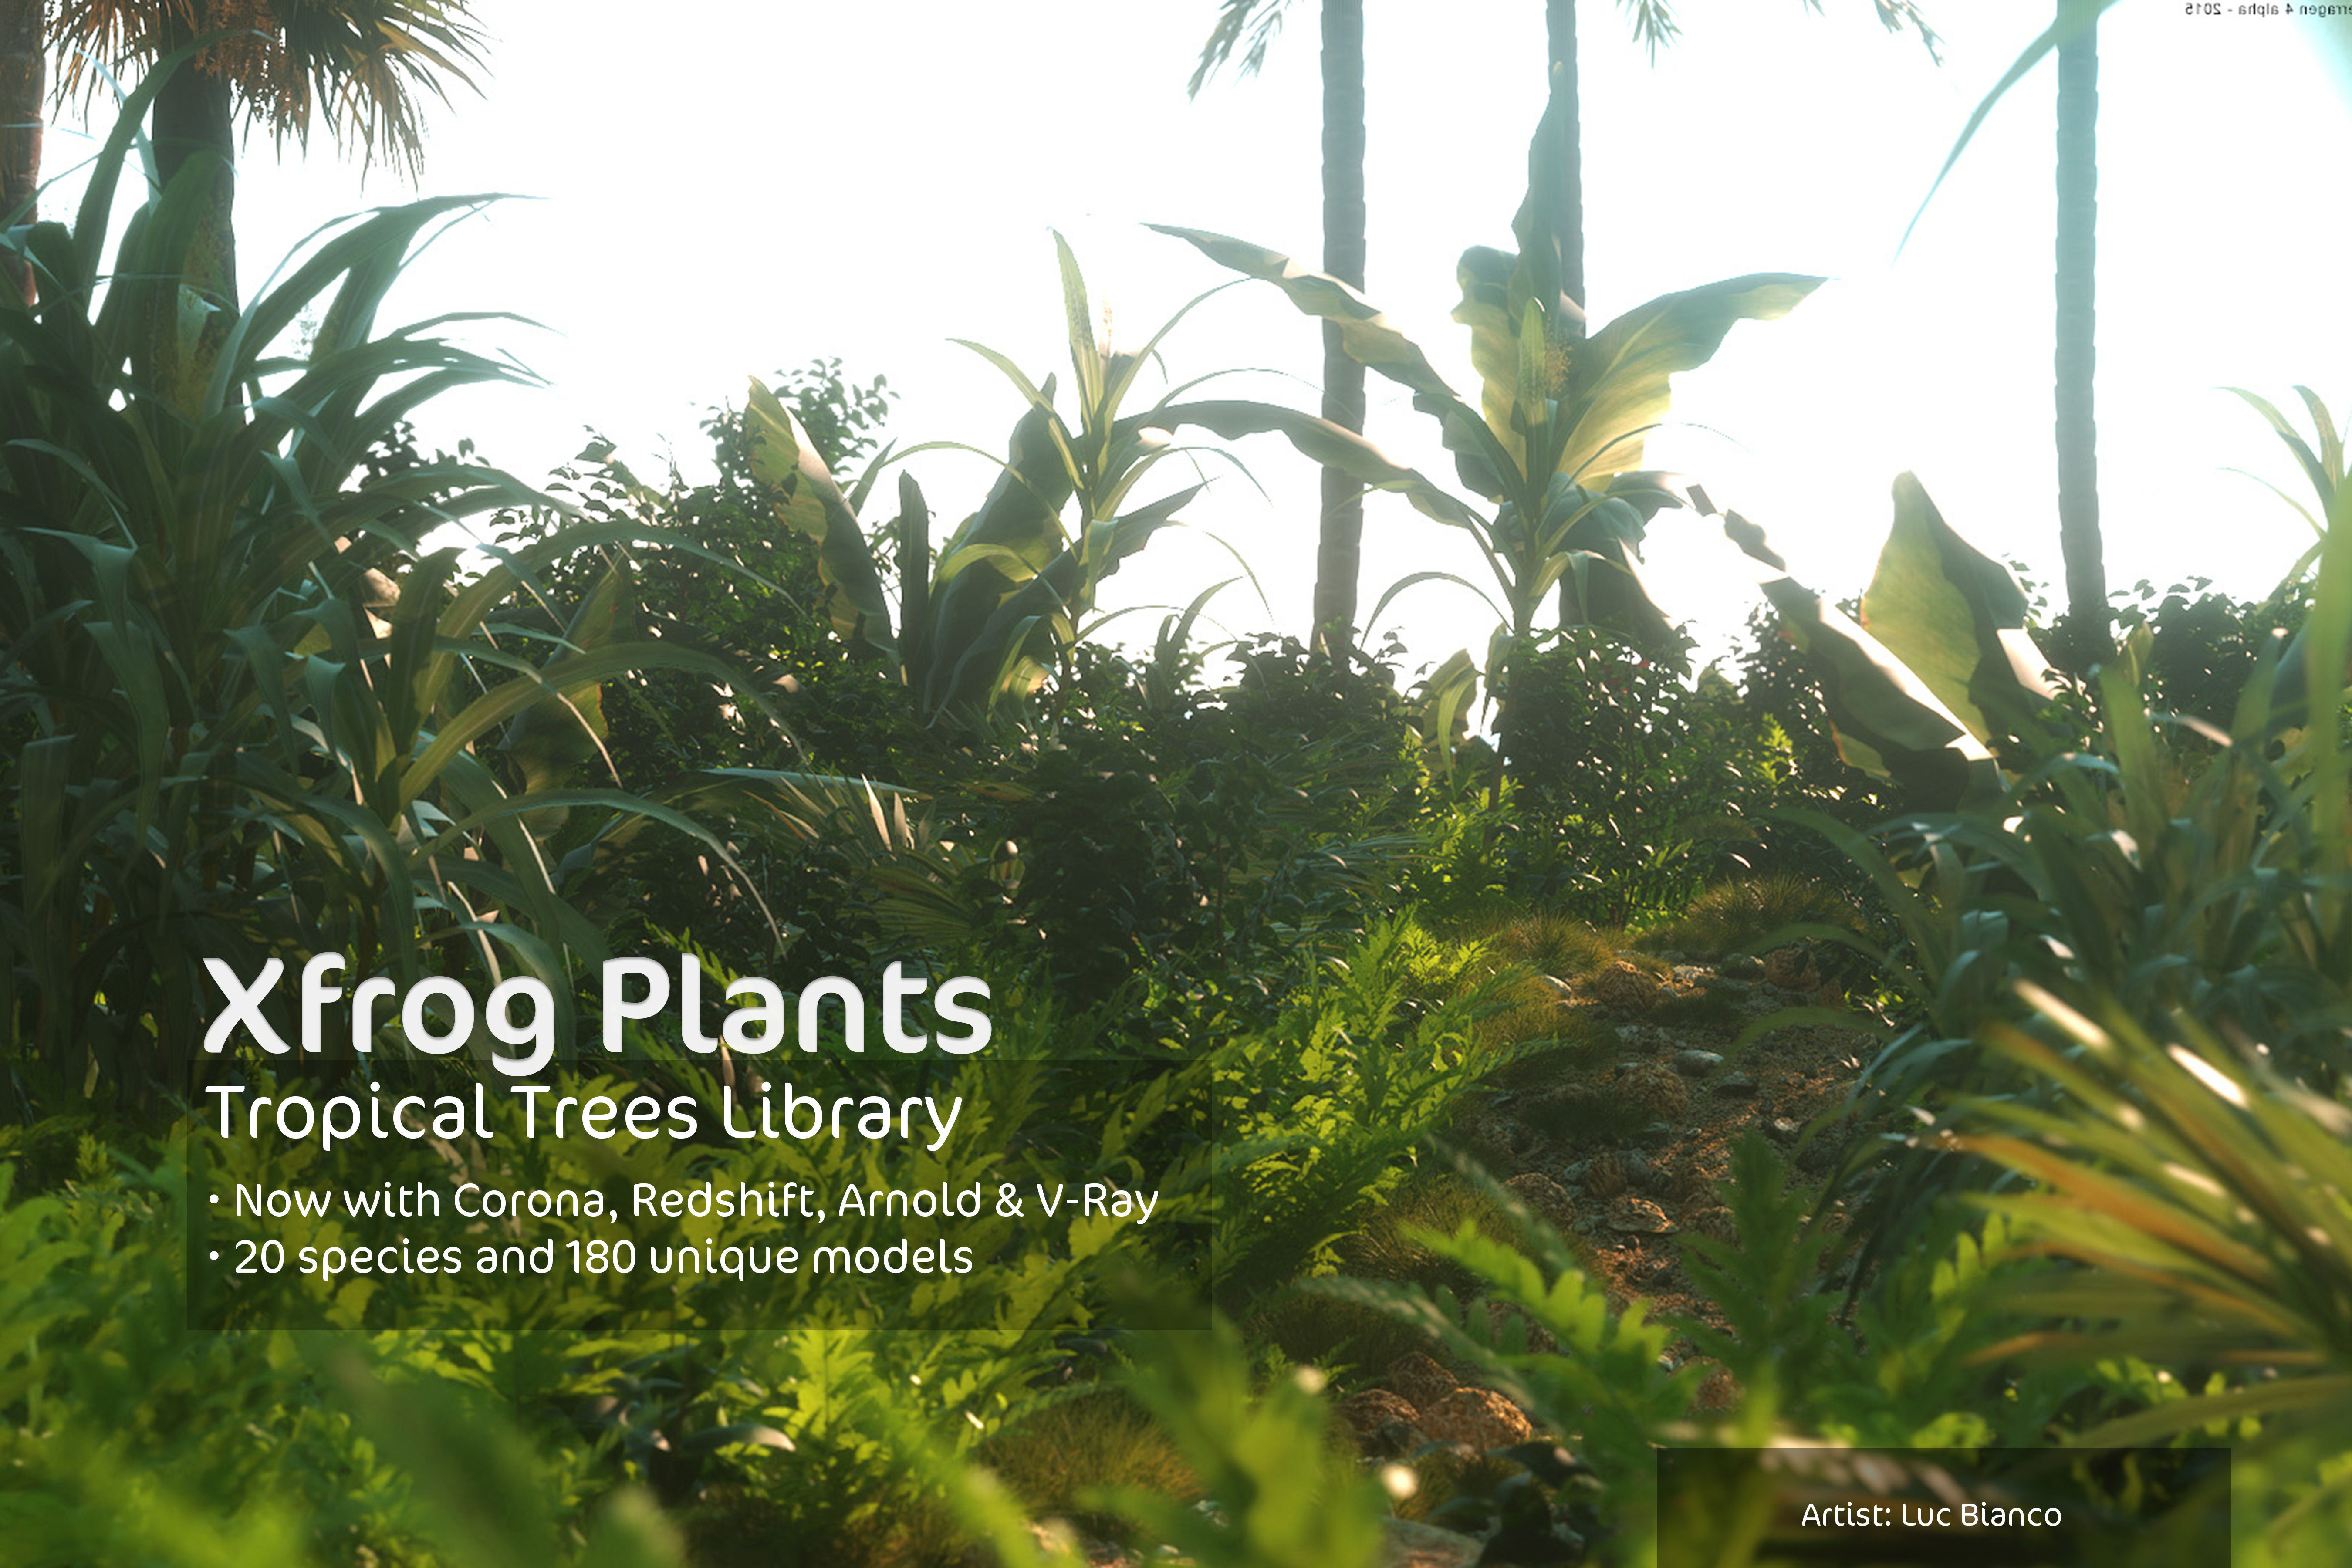 2020 XfrogPlants Tropical Trees Library